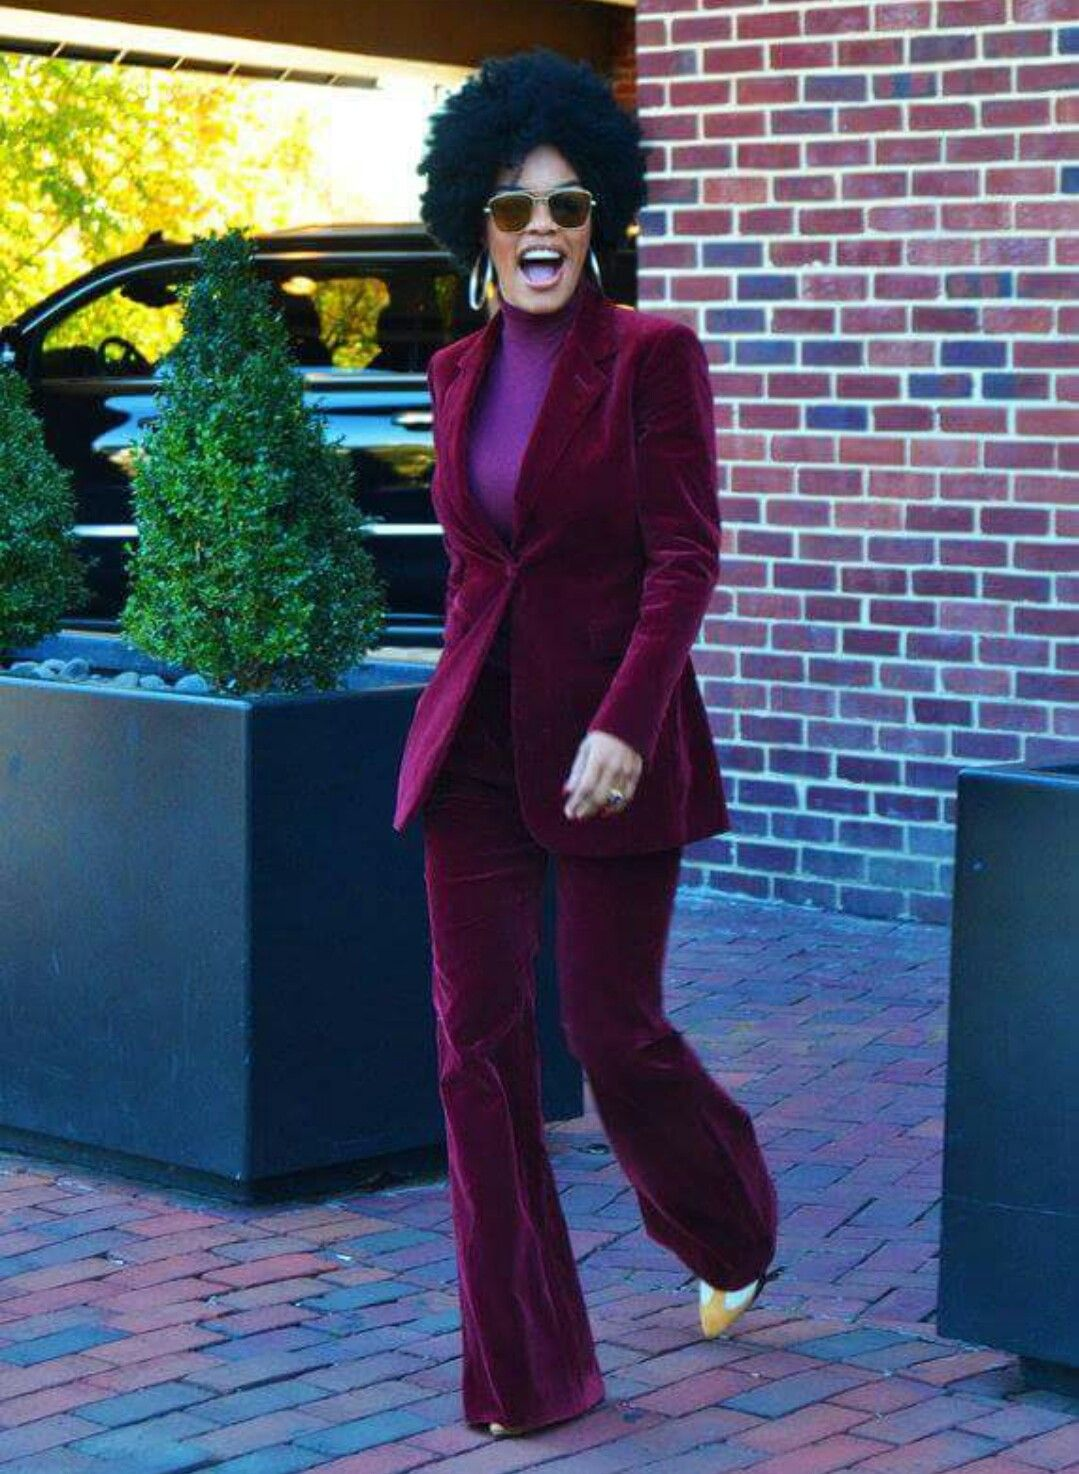 abdefe35206be6 Pin by A W on That 70s style in 2019 | Teyana taylor, Taylor white, Types  of fashion styles